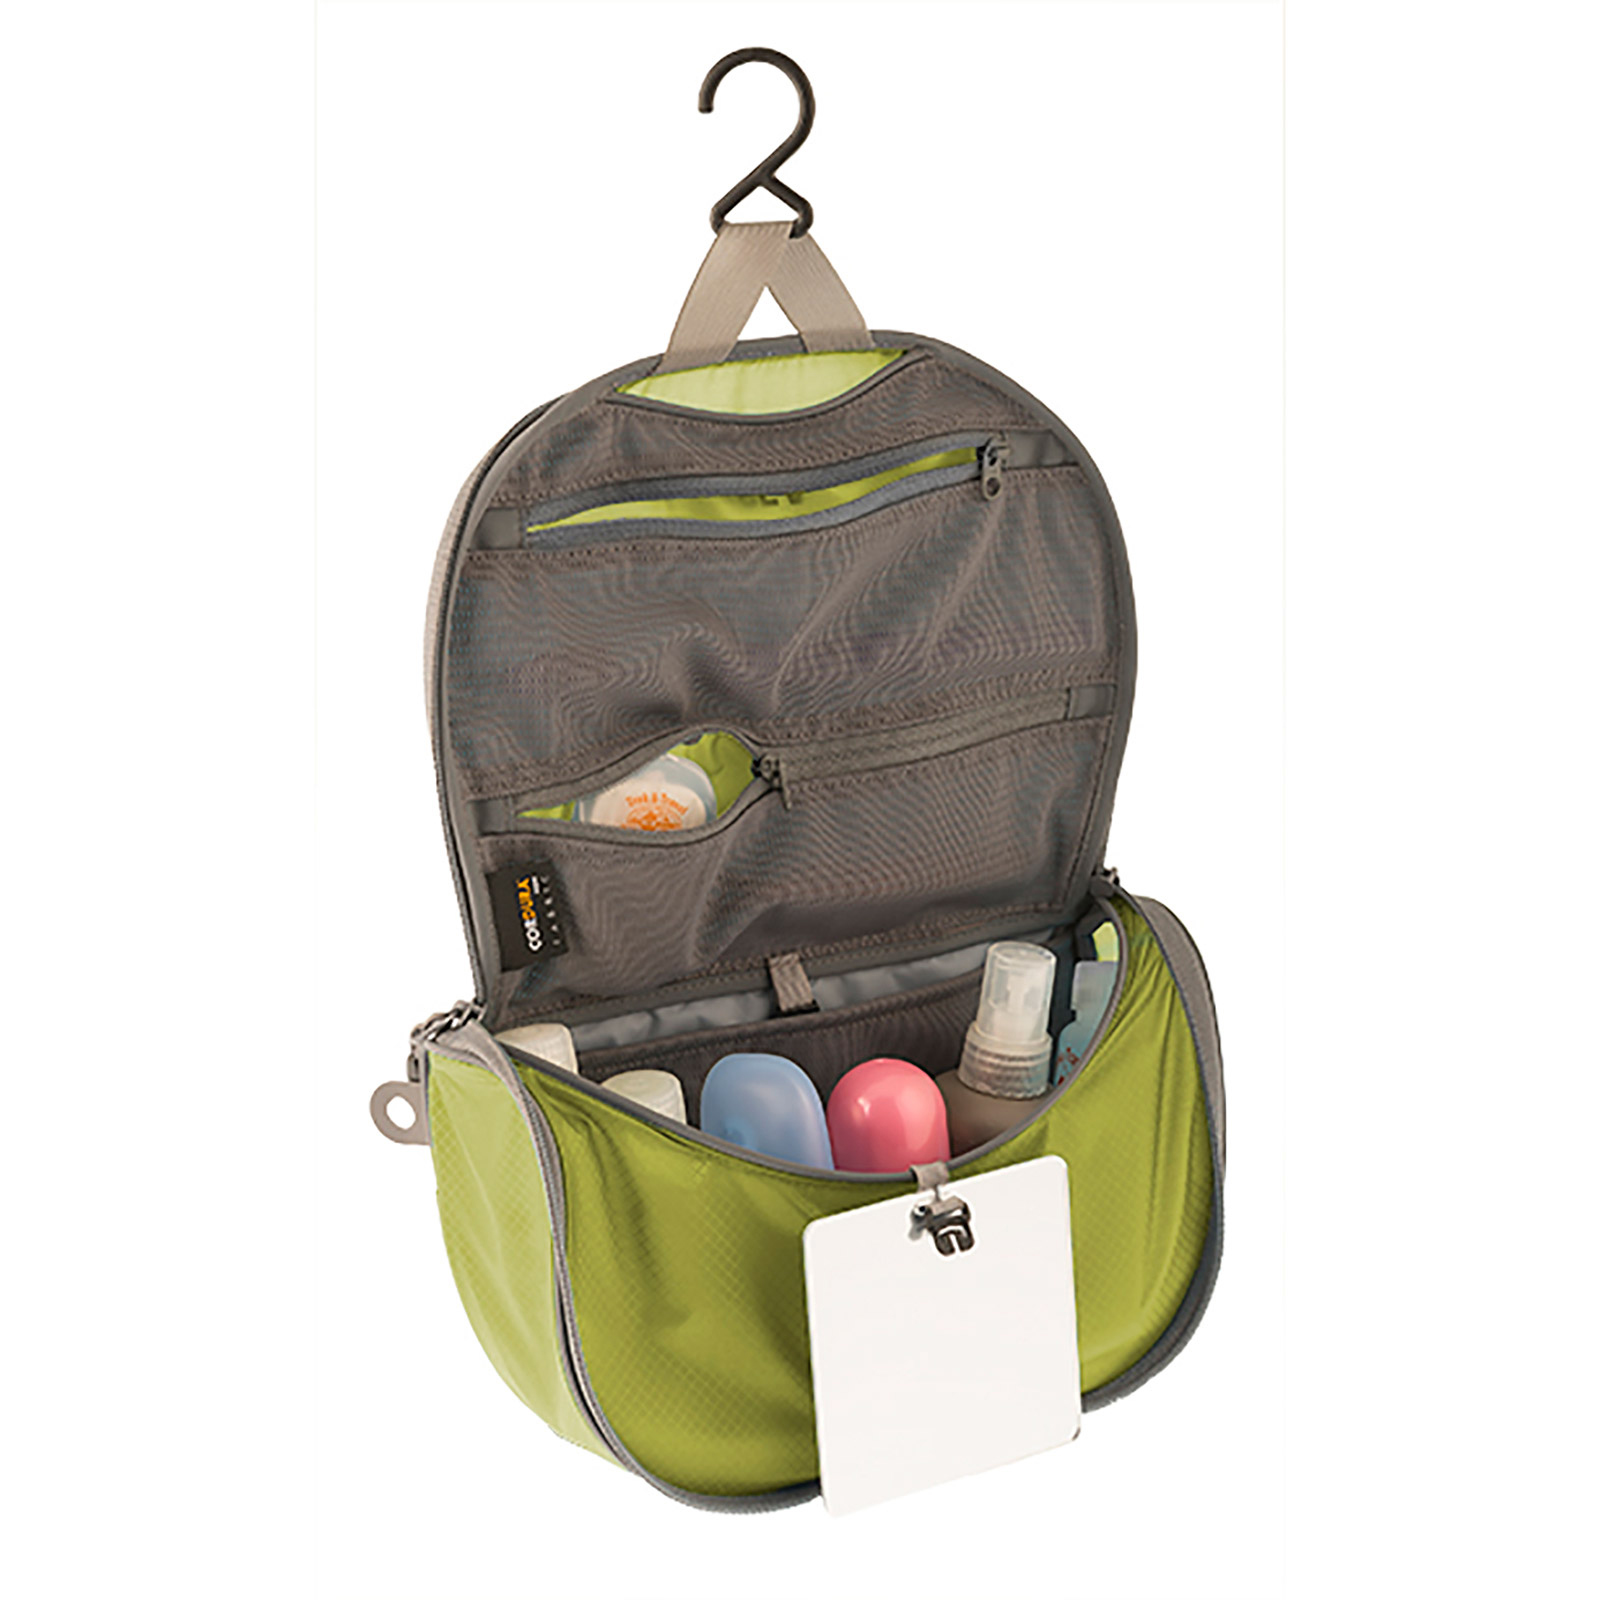 Travelling Light Hanging Toiletry Bag.